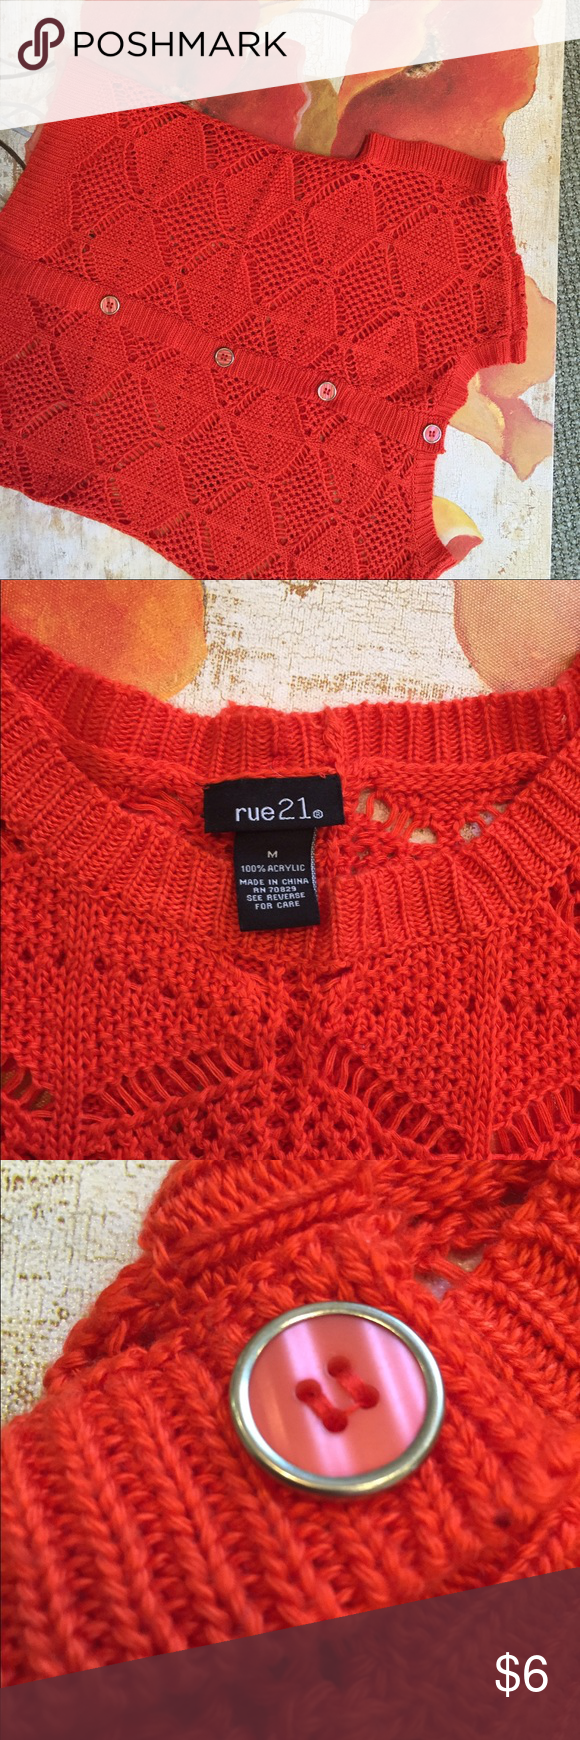 Orange knit sweater. This Orange knit sweater is fun. The gold trimmed buttons go down the back. No flaws or issues.  It's 20 inches from the top is the shoulder to the bottom. Rue 21 Sweaters Crew & Scoop Necks